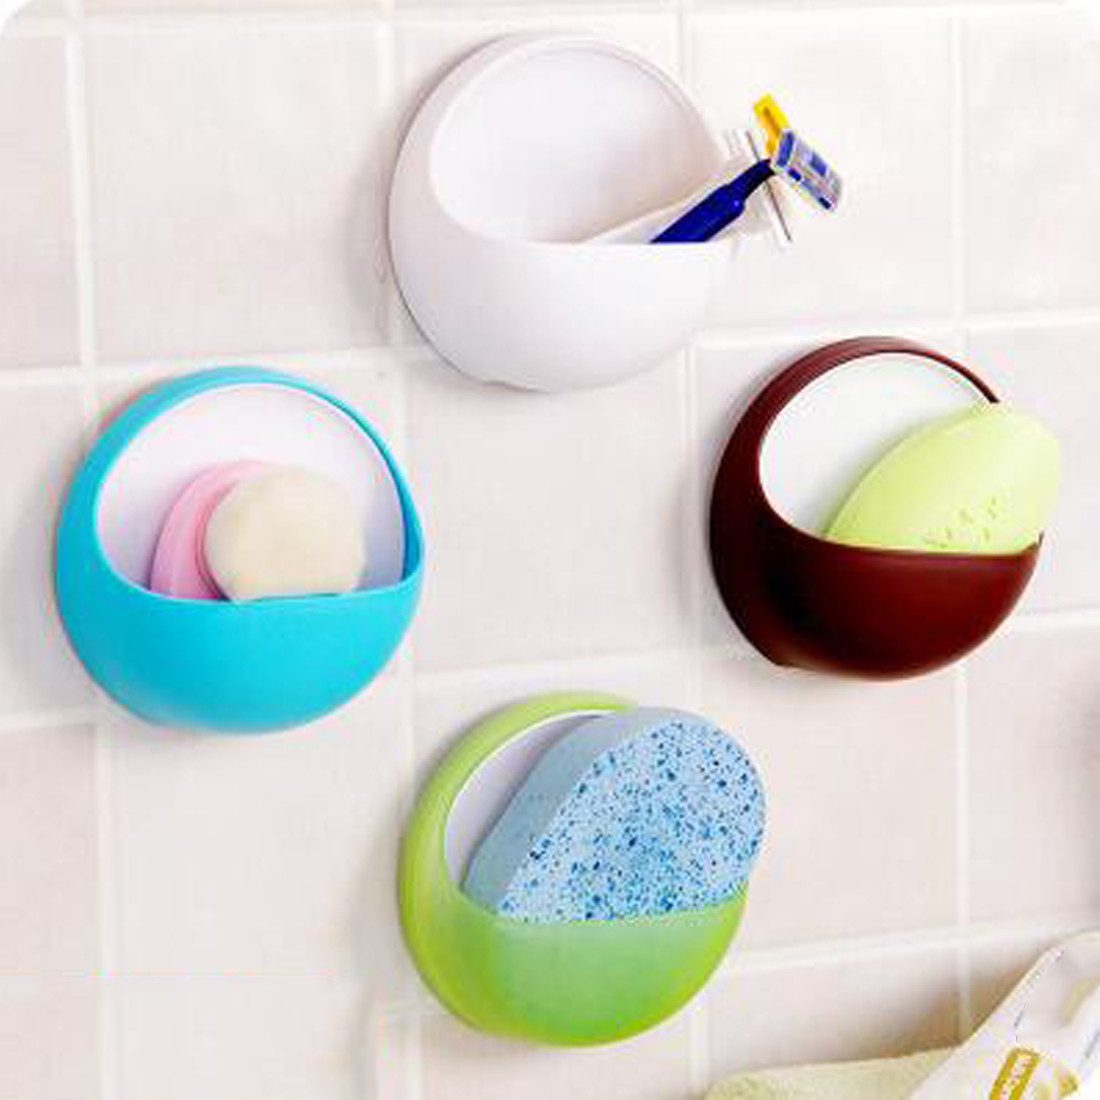 Dropship Plastic Suction Cup Soap Toothbrush Box Dish Holder Drain Rack Bathroom Shower Accessory bathroom accessories cute toe toothbrush holder with suction cup